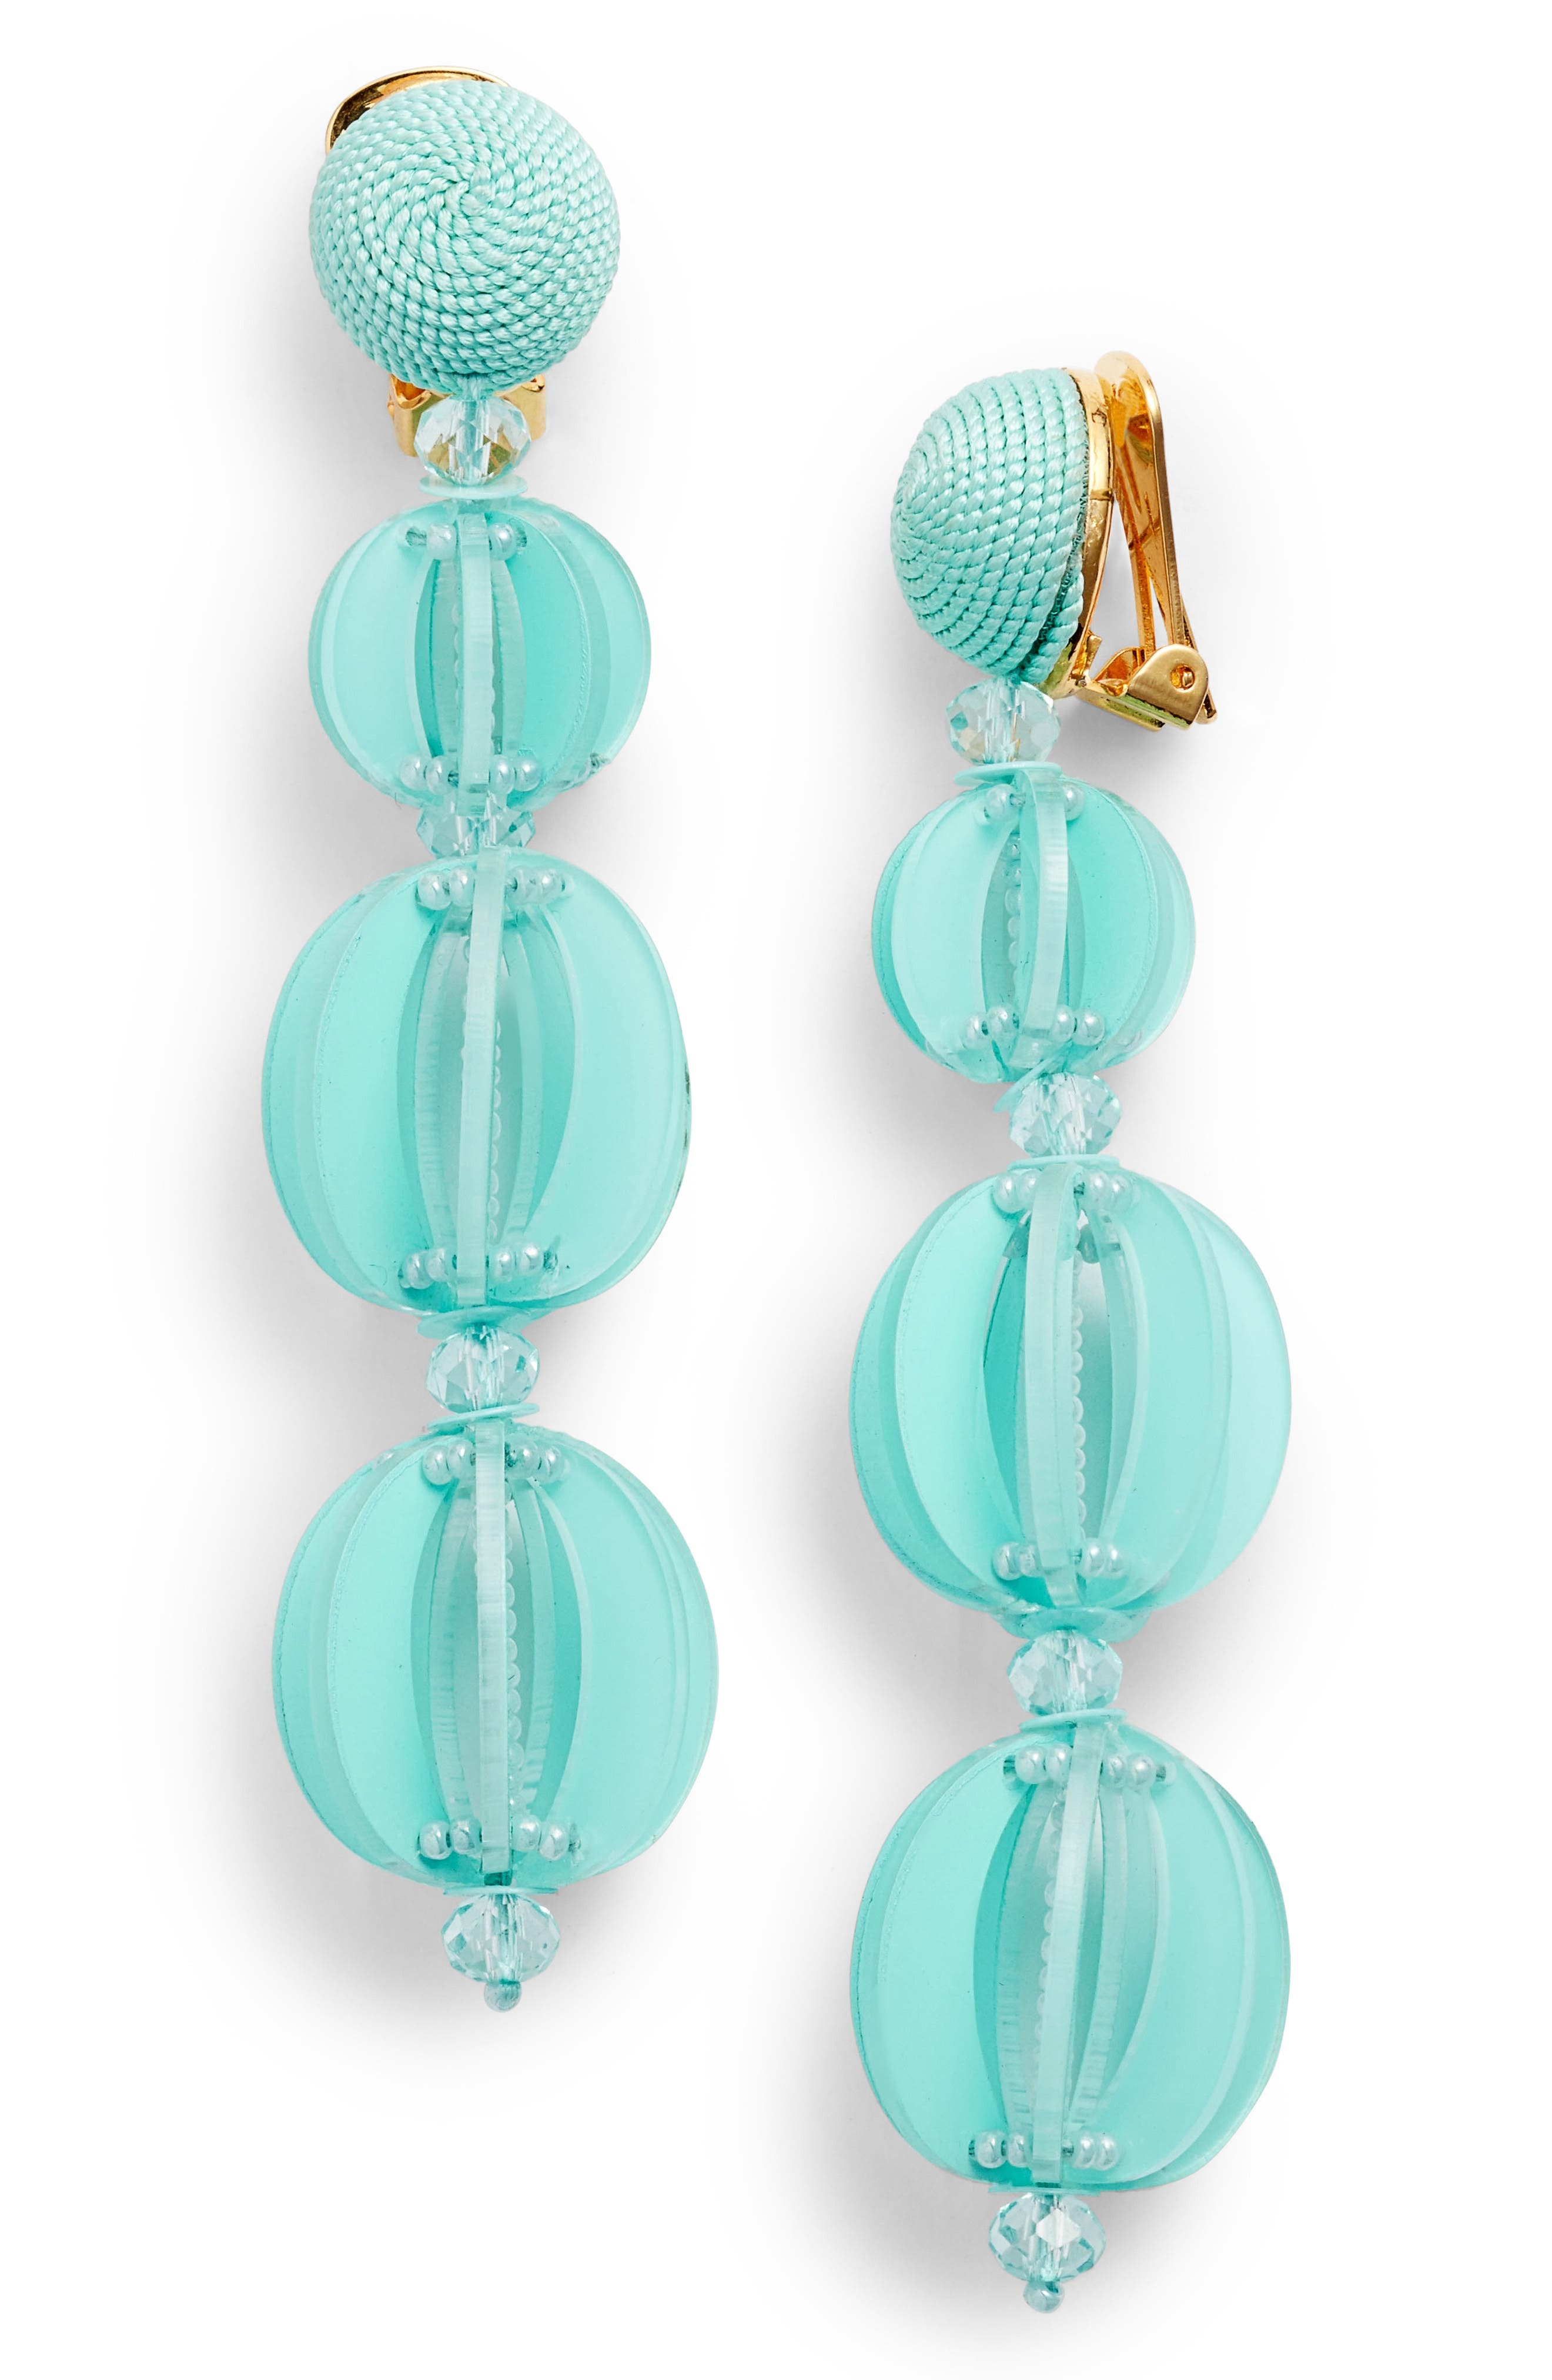 Oscar de la Renta Spliced Globe Earrings